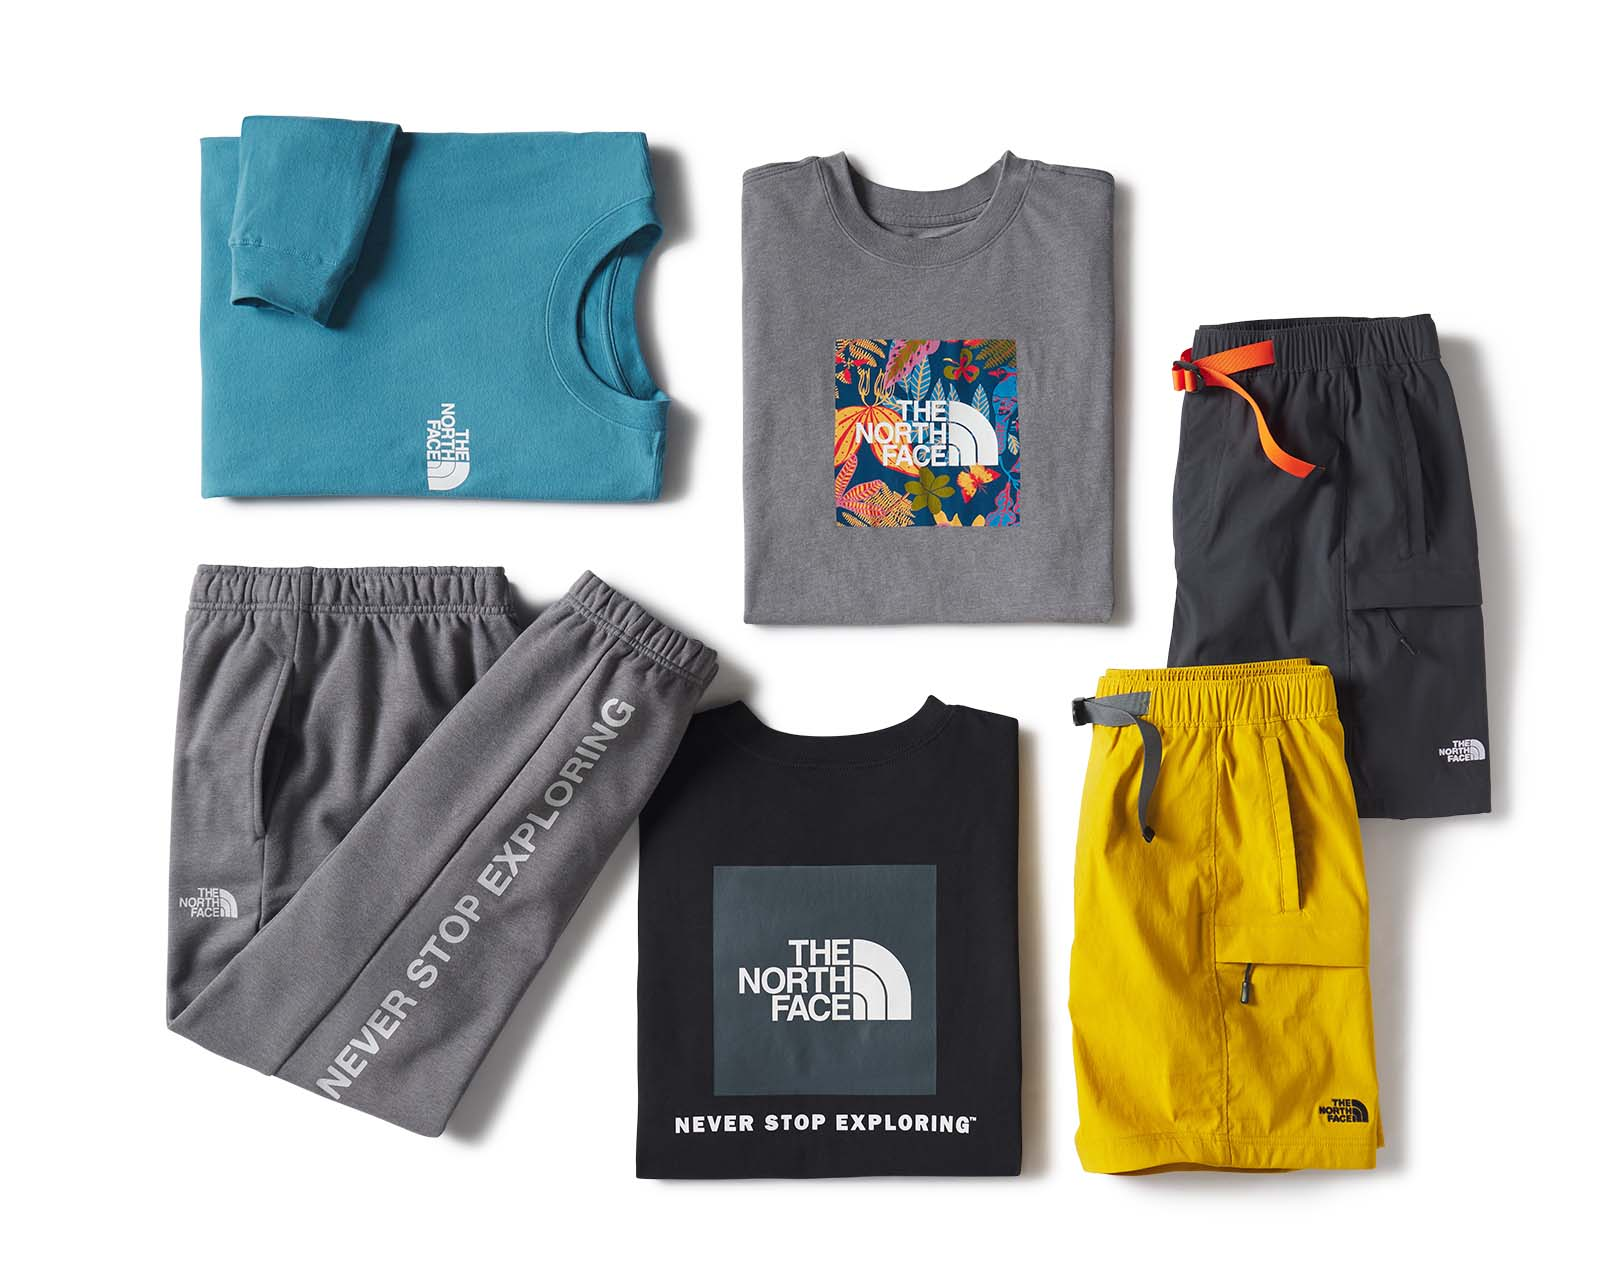 TILLYS-Editorial-Damion-Lloyd-Photography-Laydown-Commercial-Apparel-Product-Clothing-Art-Directed-Los-Angeles-Orange-County-the-north-face-pants-shirt-jogger